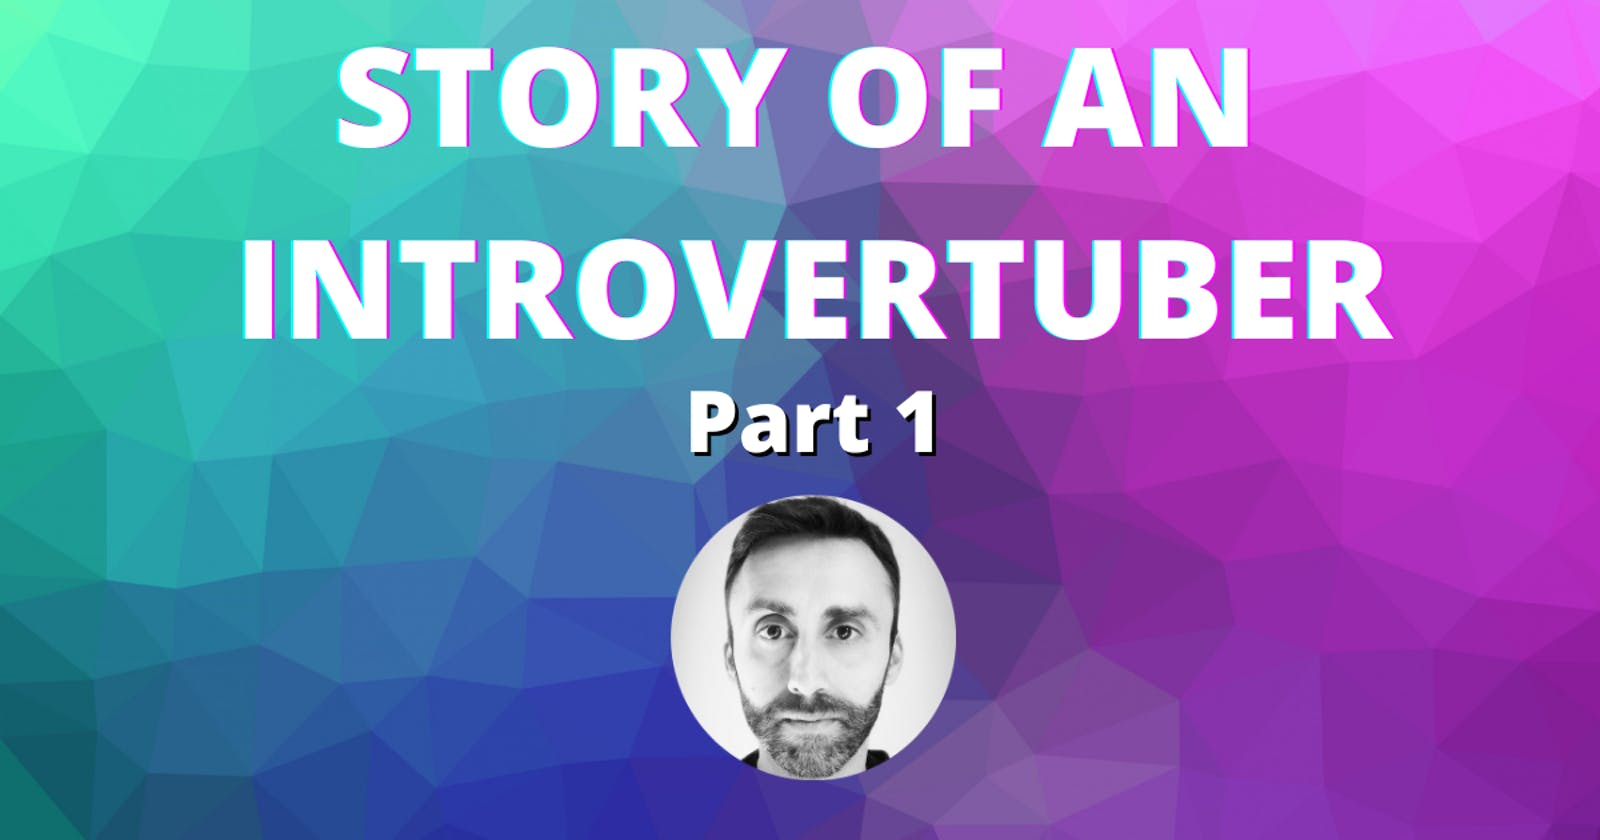 Story of an Introvertuber - Part 1